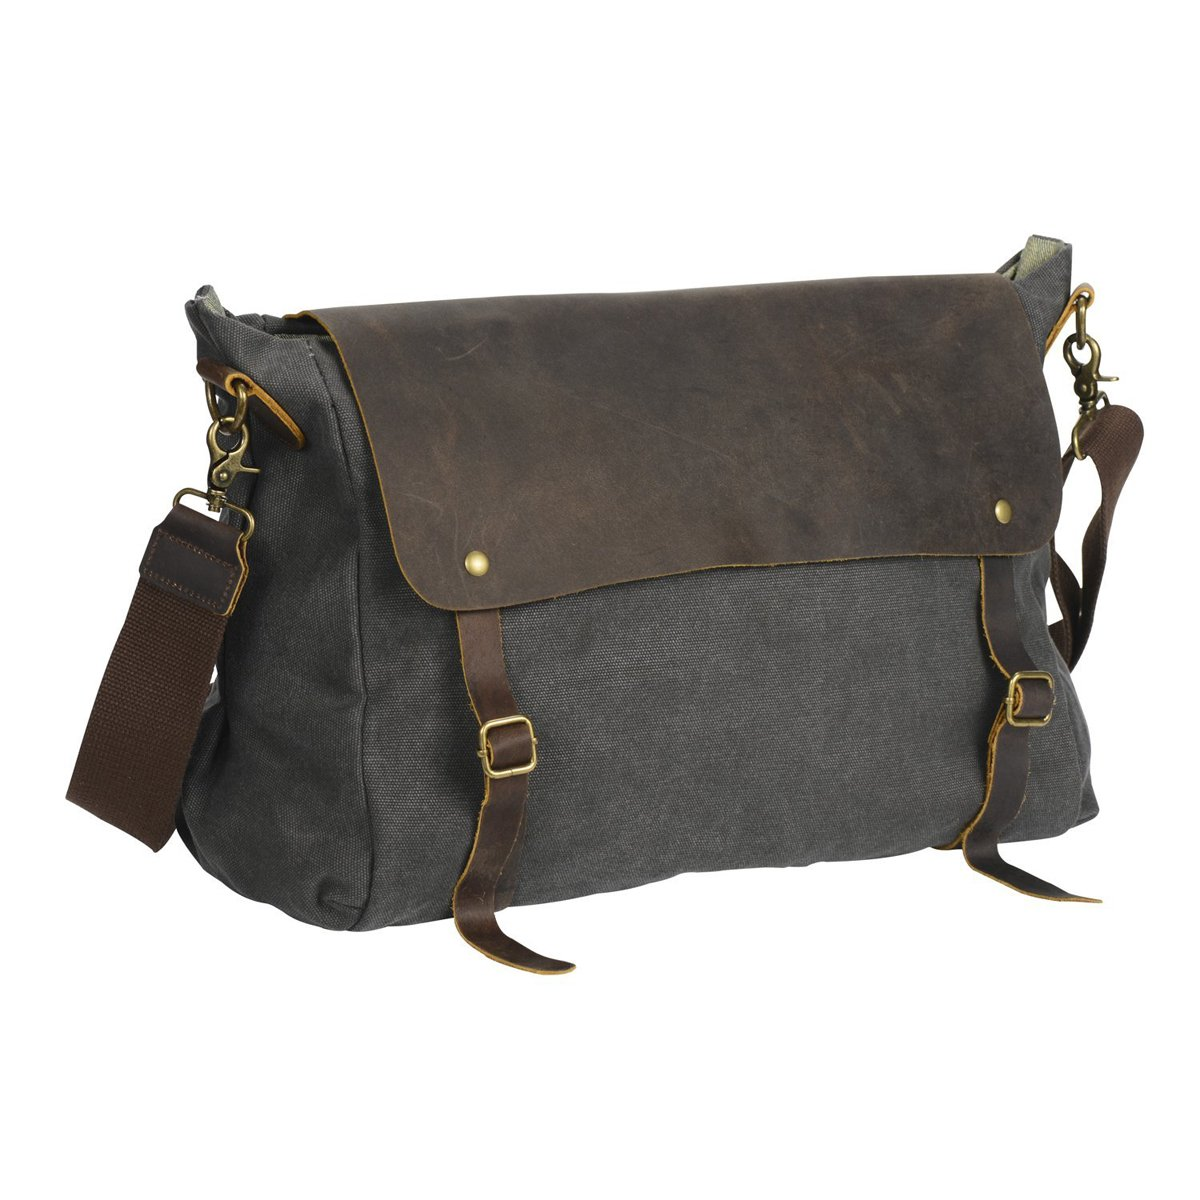 Wonder Youth Canvas Messenger Bag Leather Shoulder Bag Book bag for Man and Women – Grey-L